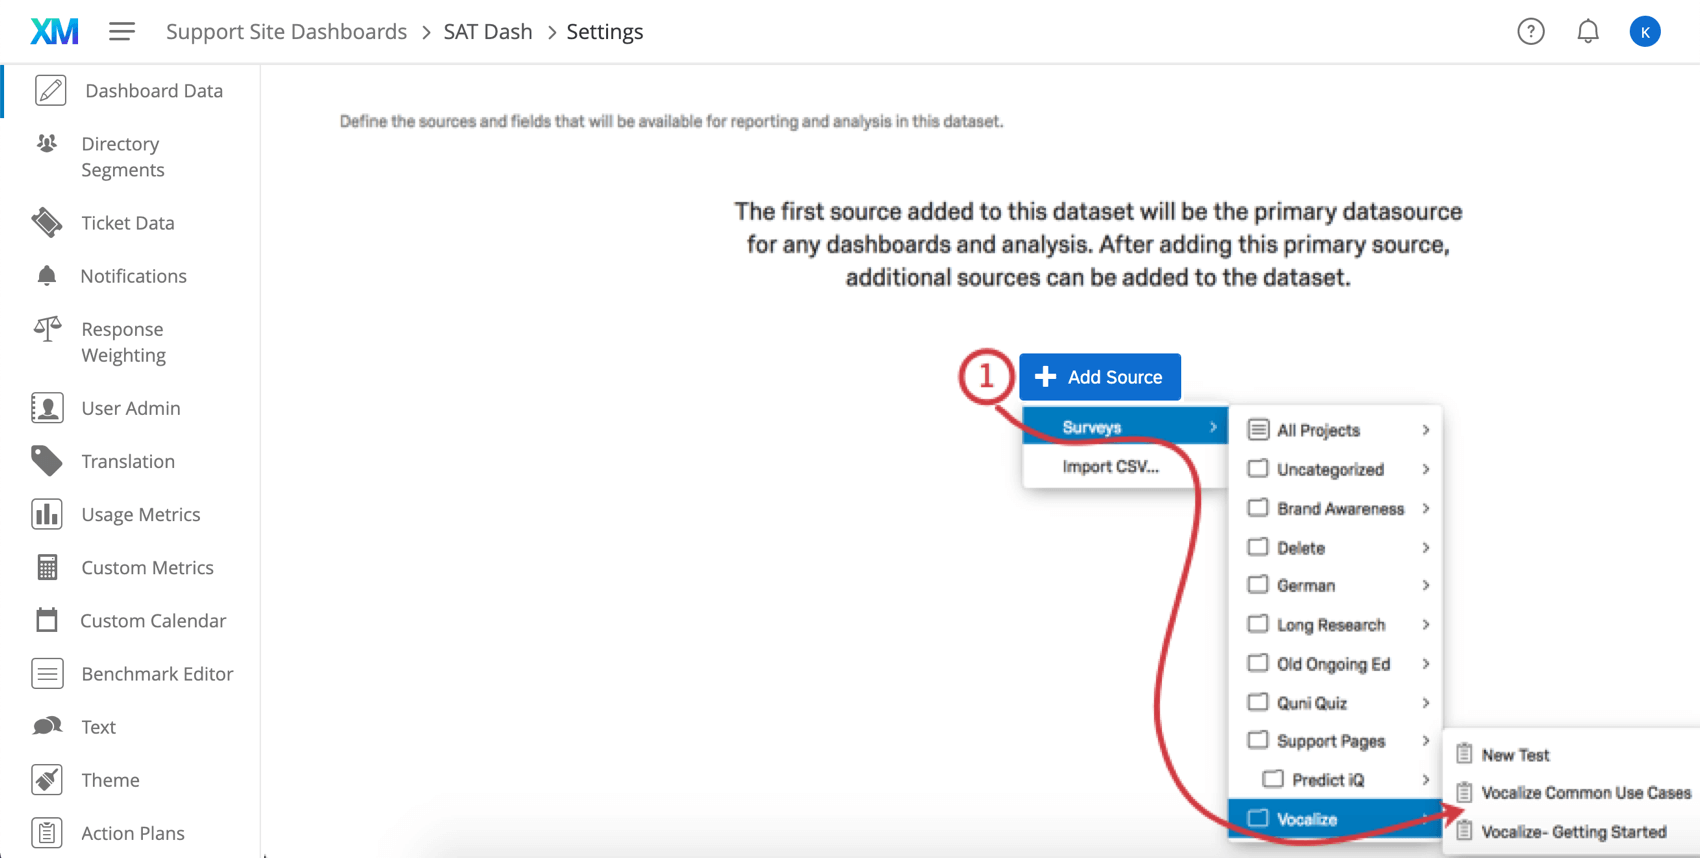 Add source button clicked in dashboard data tab